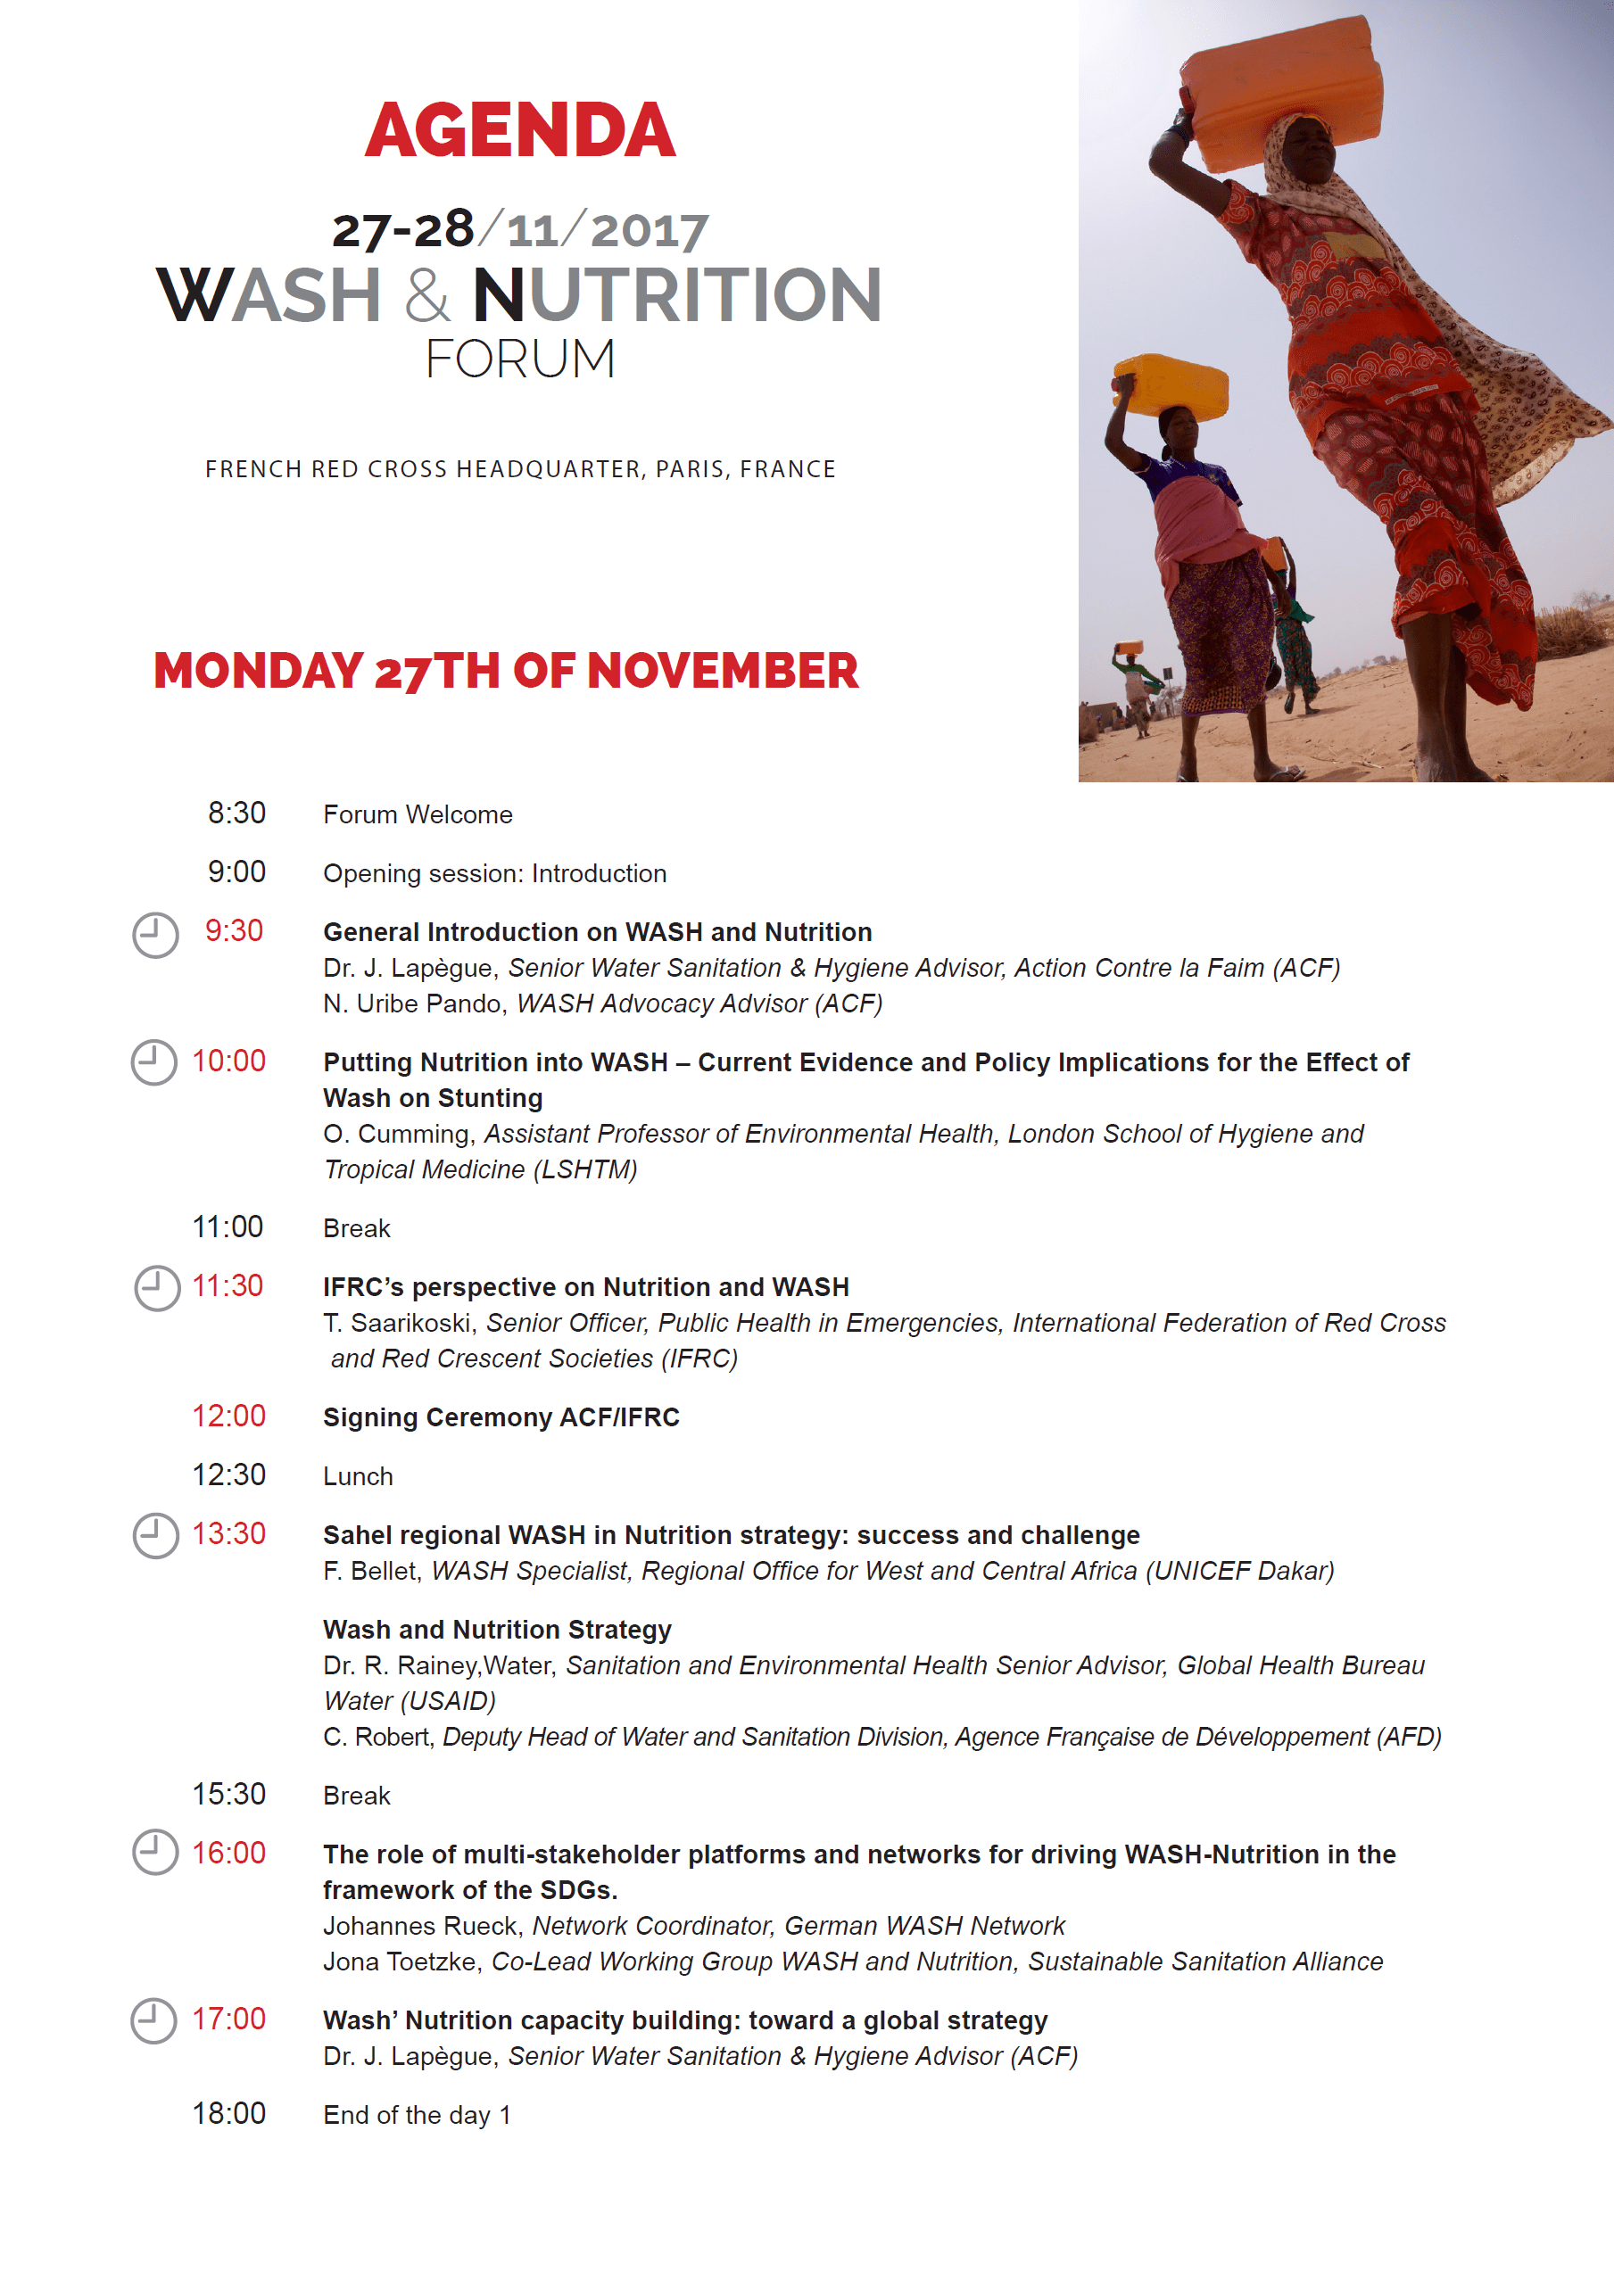 Agenda day 27.png